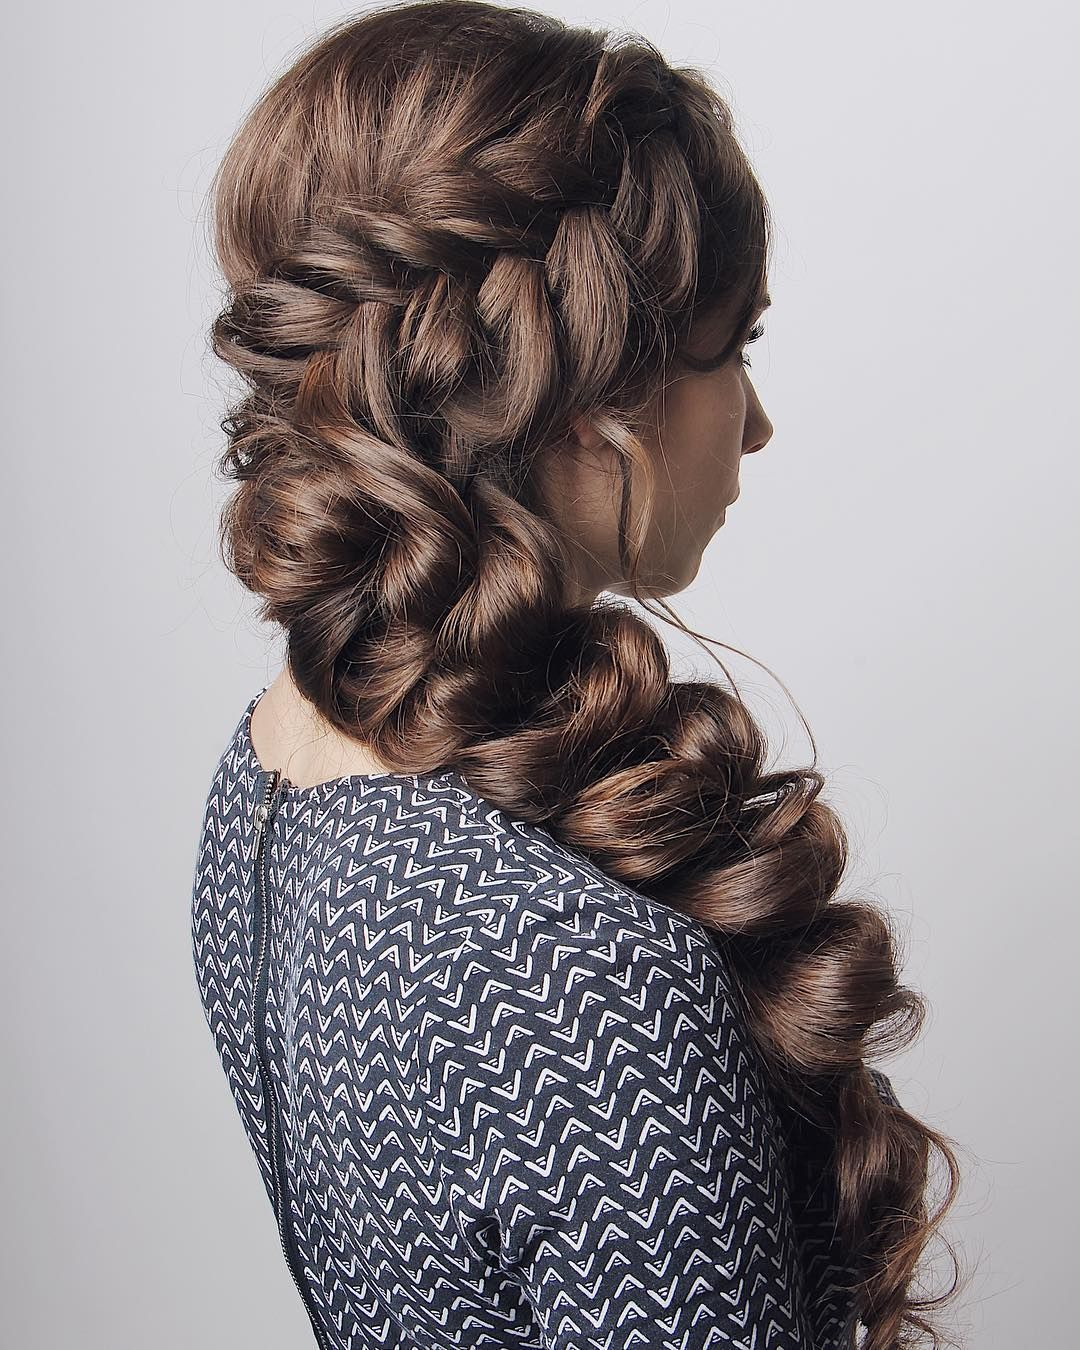 Braids updo hairstyles wedding hairtwisted updo hairstyle